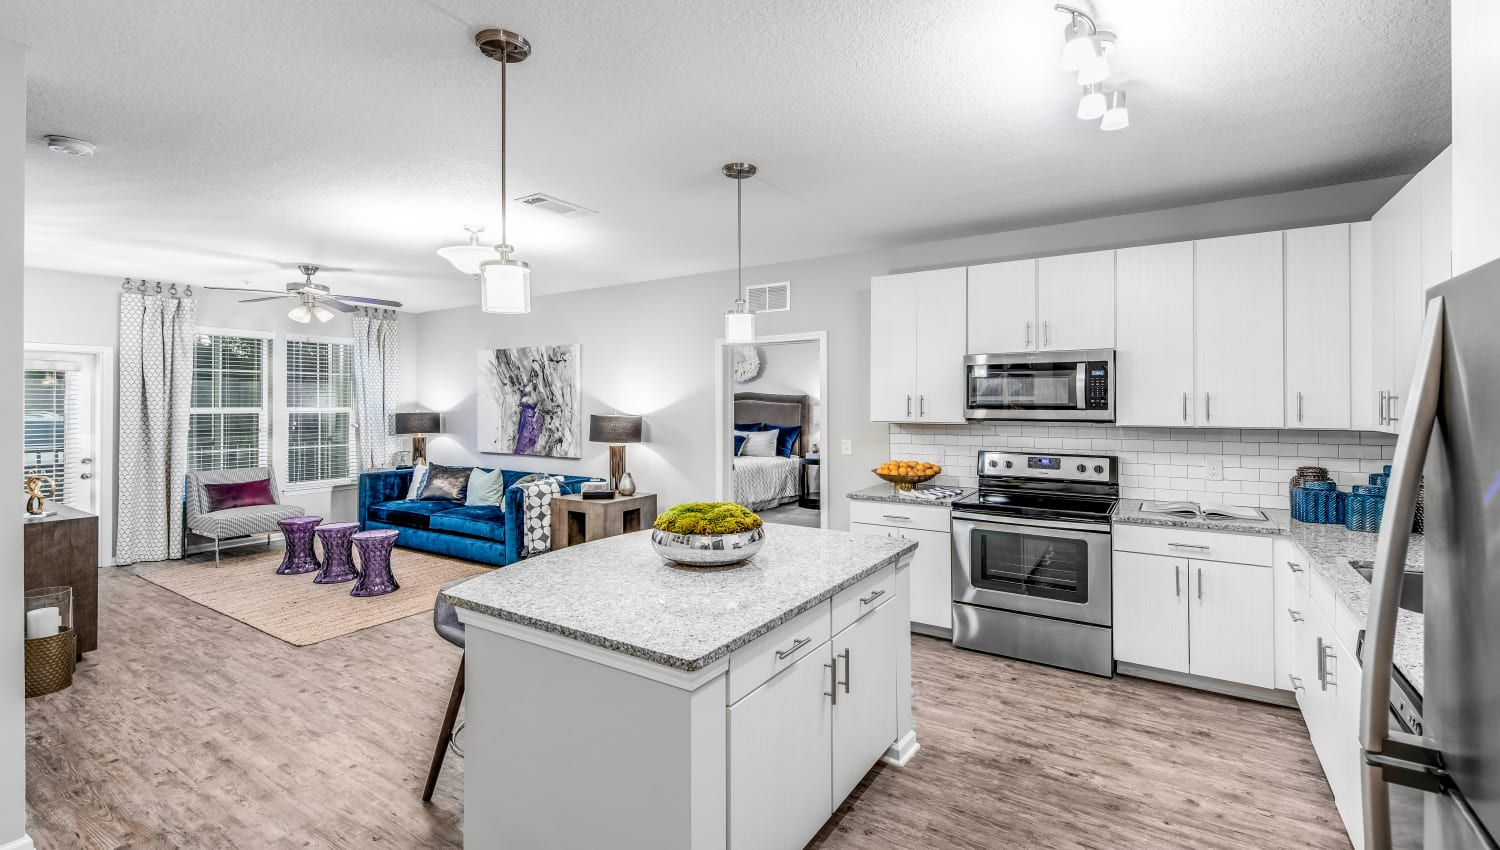 Gourmet kitchen with an island and granite countertops in a model home at Canopy at Citrus Park in Tampa, Florida